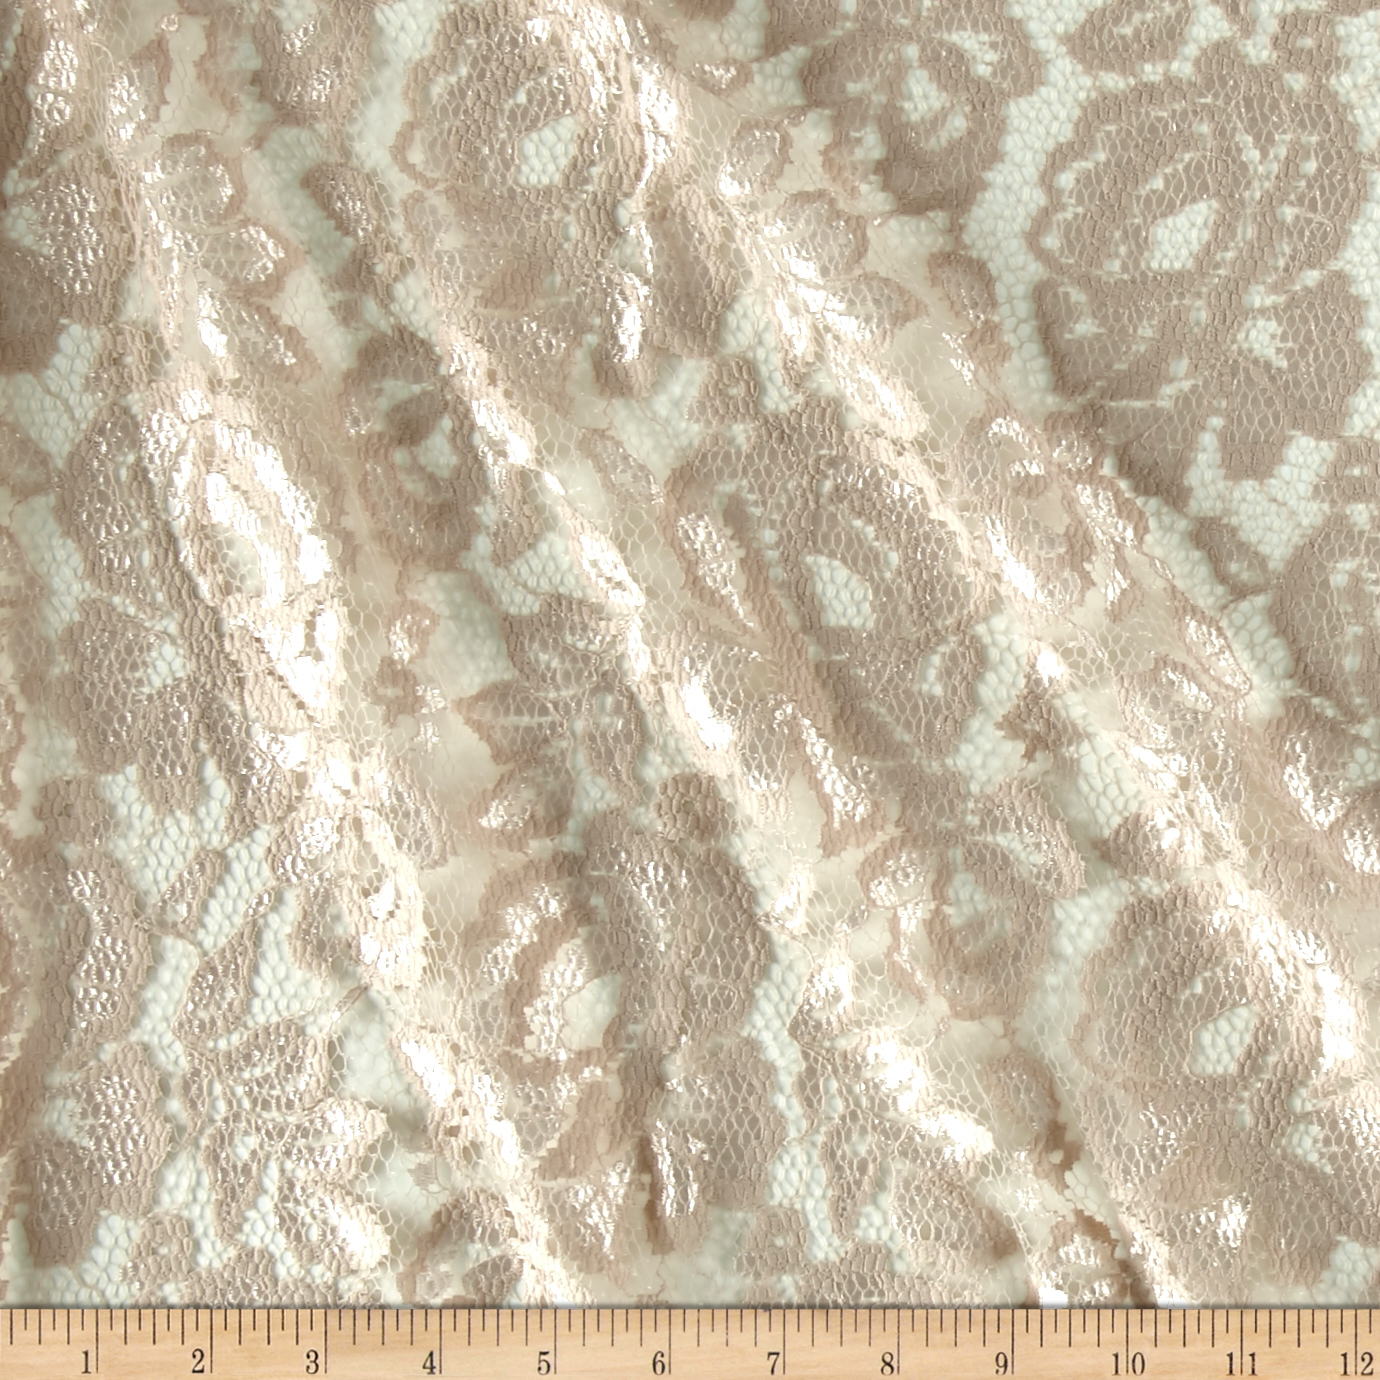 Designer Lace Rose Blush Fabric by Fabric Merchants in USA